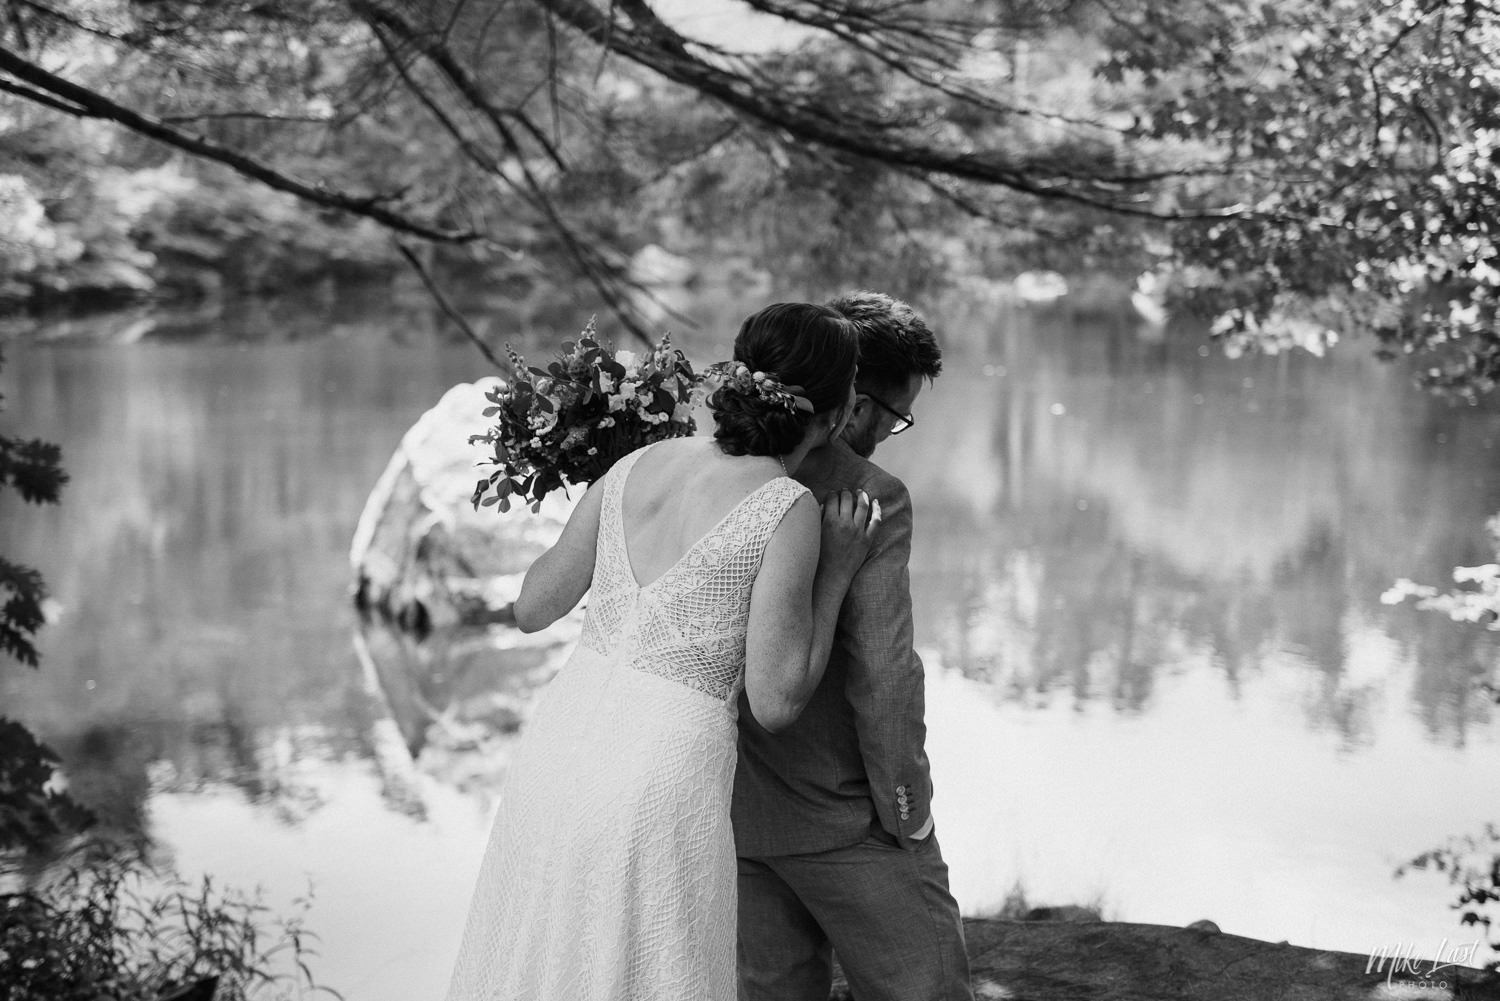 Bridge and groom first look at Pine Grove Park in Milton, Nova Scotia